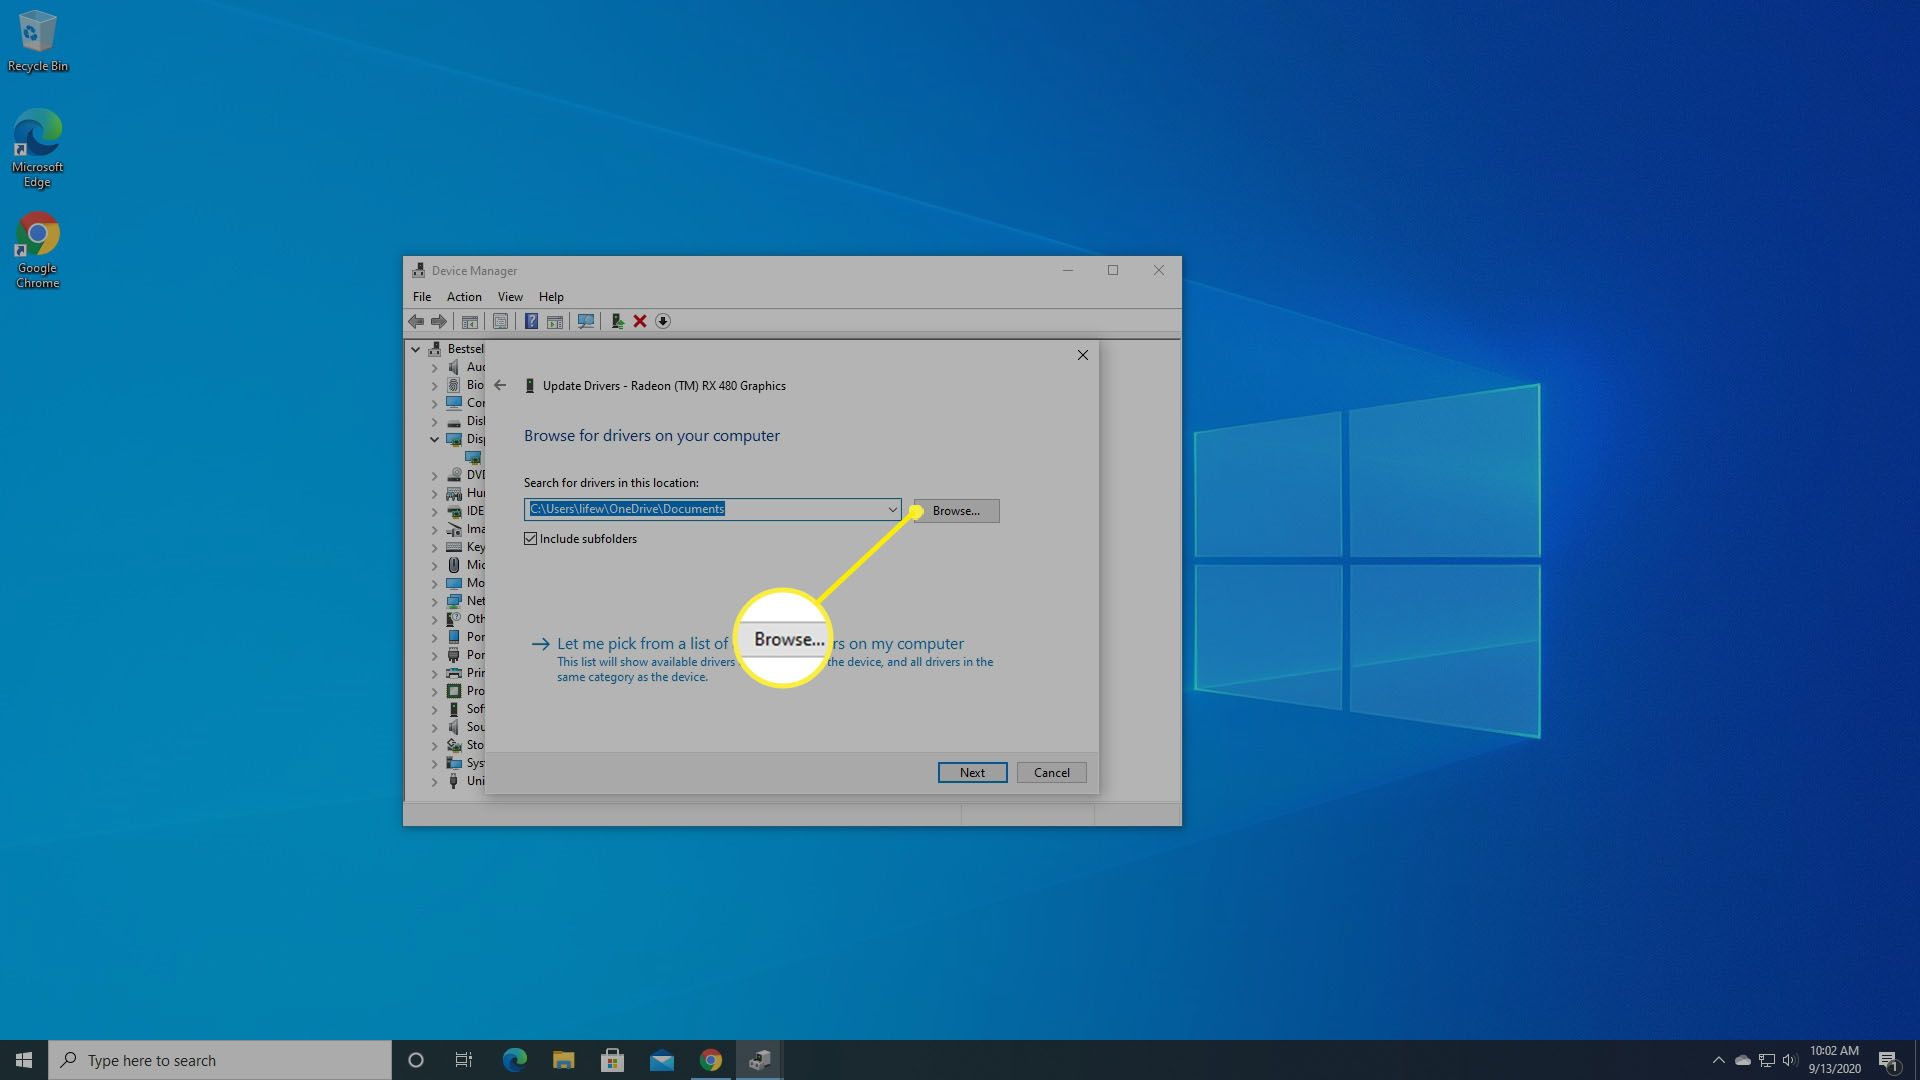 Ask Windows to locate the driver you downloaded